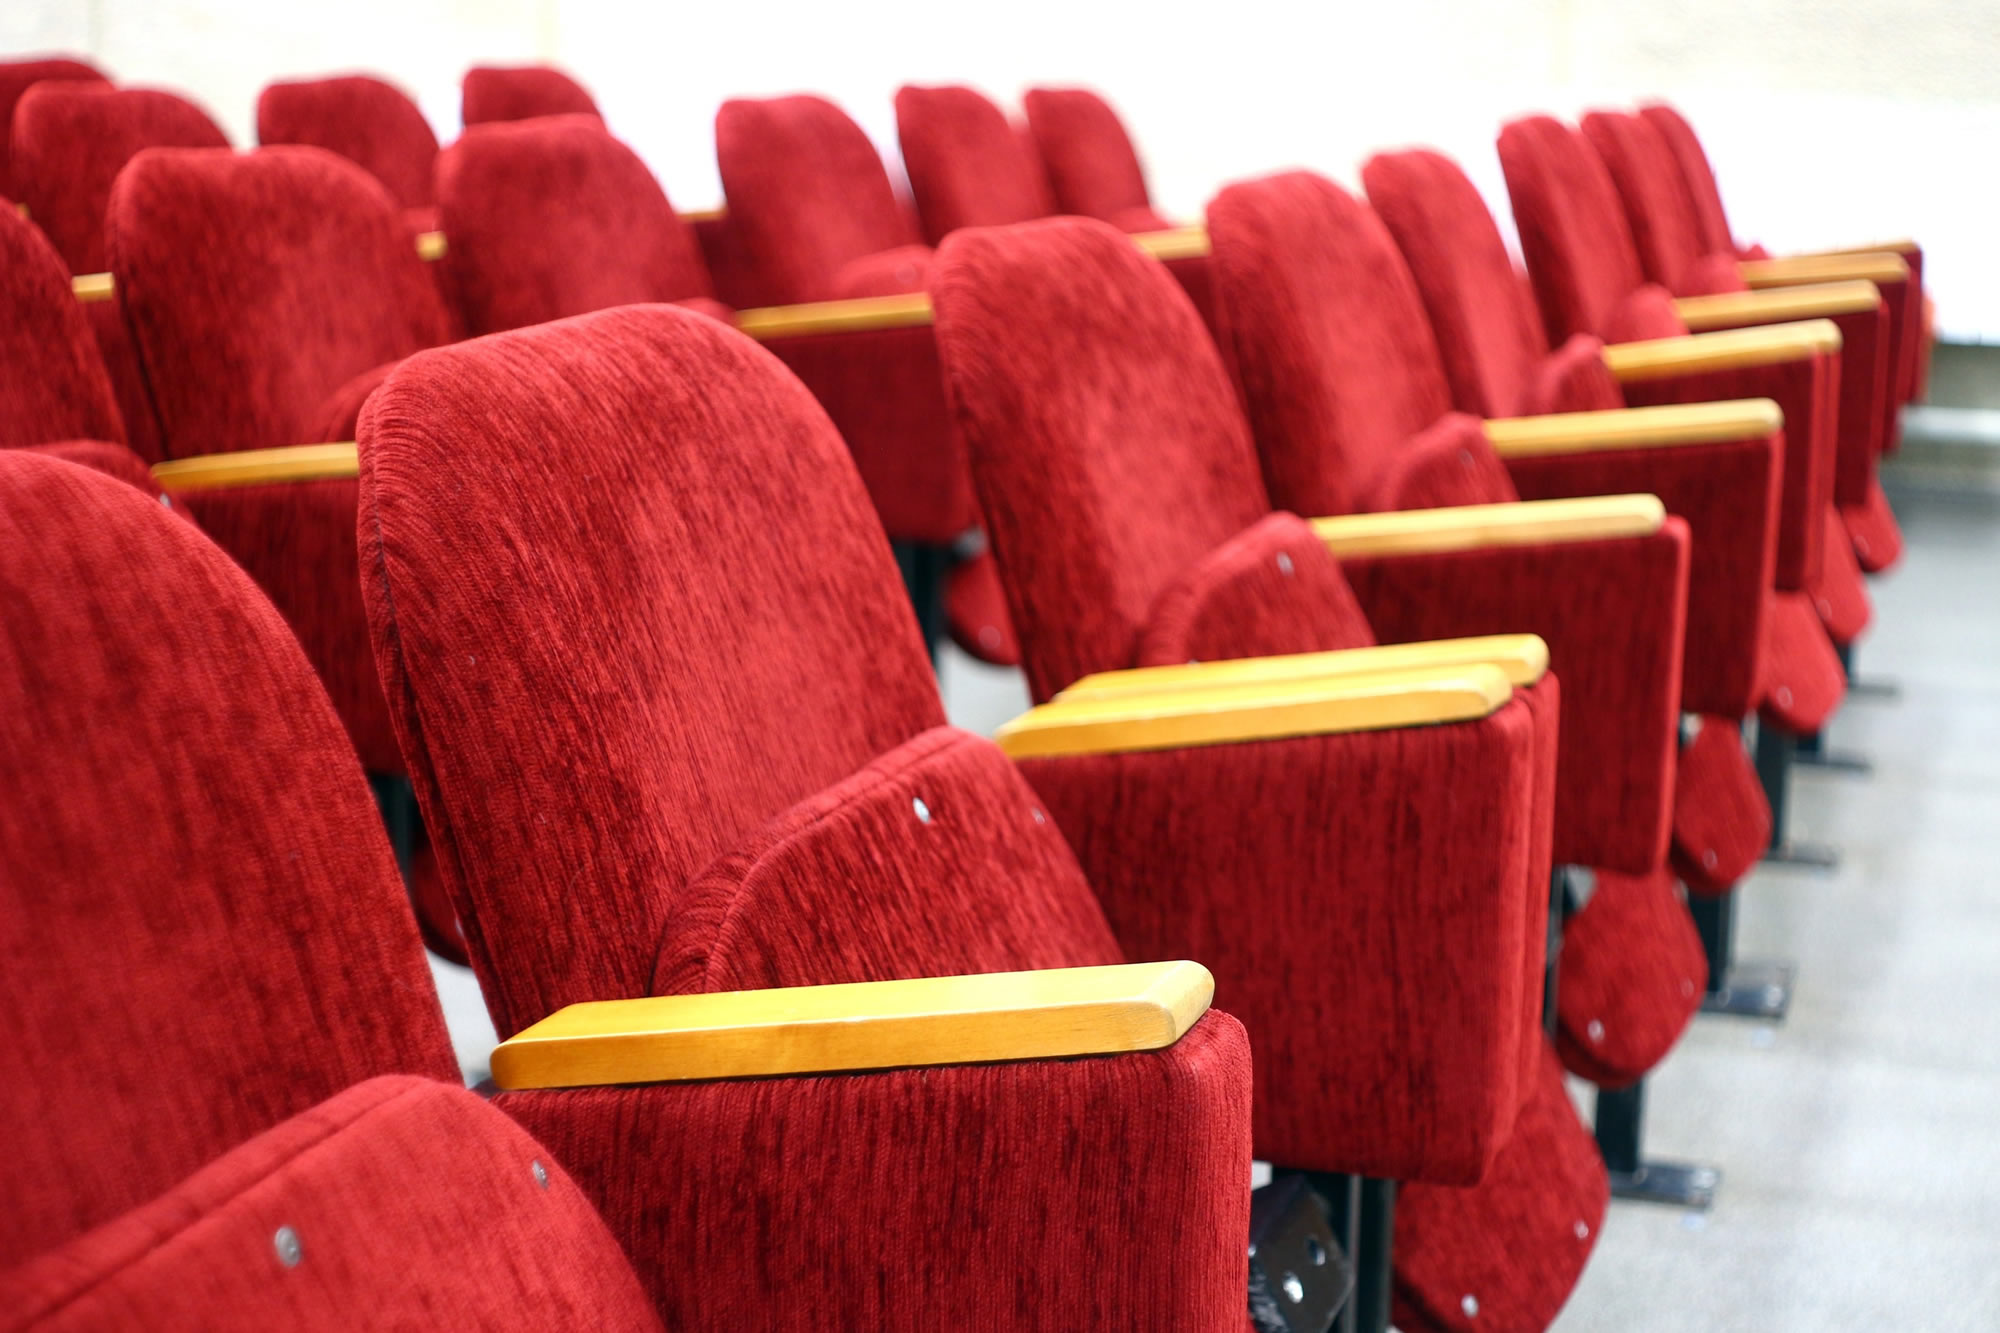 auditorium-chairs-cinema-257385